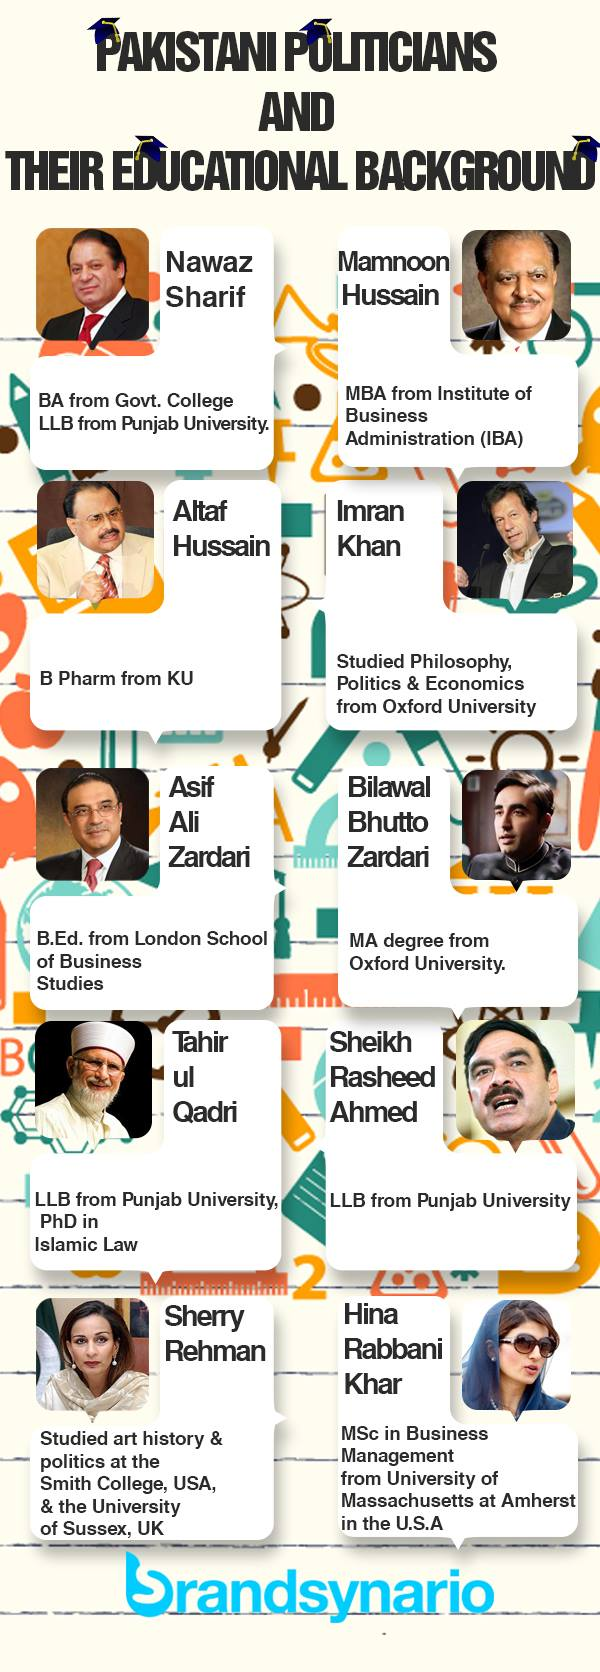 Pakistani politicians and their educational backgrounds